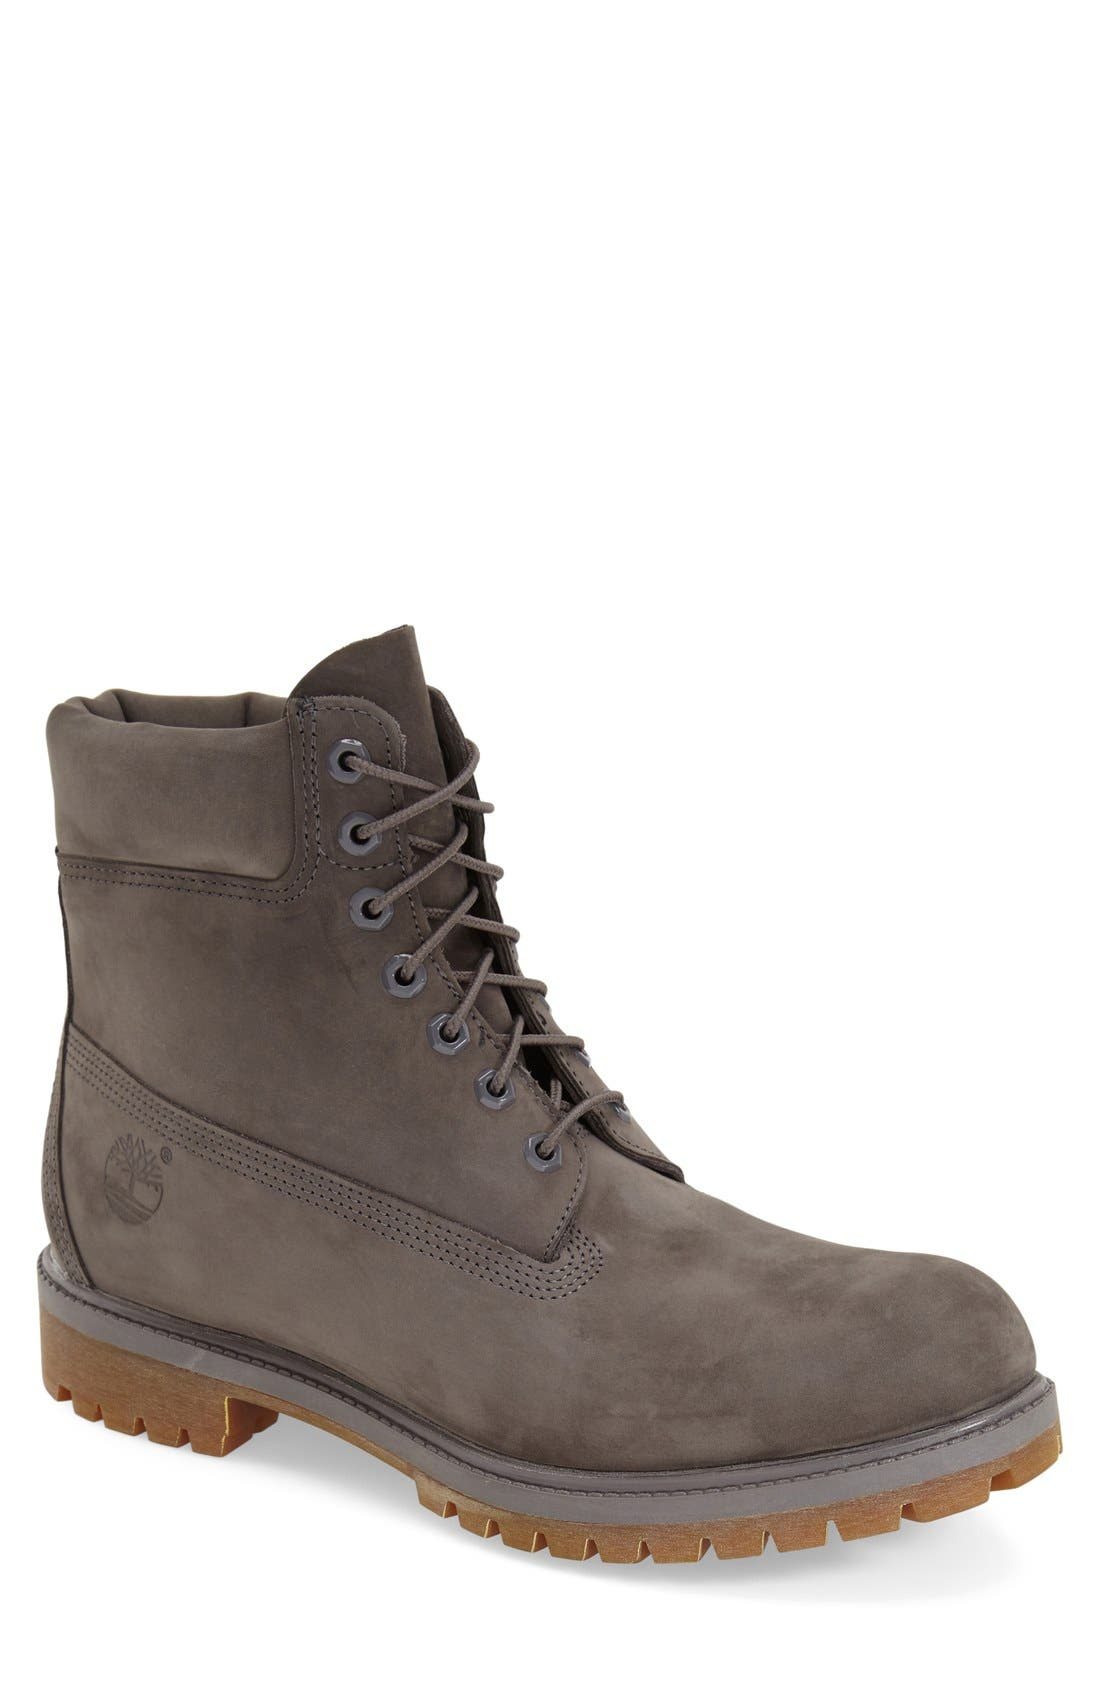 Alternate Image 1 Selected - Timberland 'Monochromatic' Waterproof Plain Toe Boot (Men)